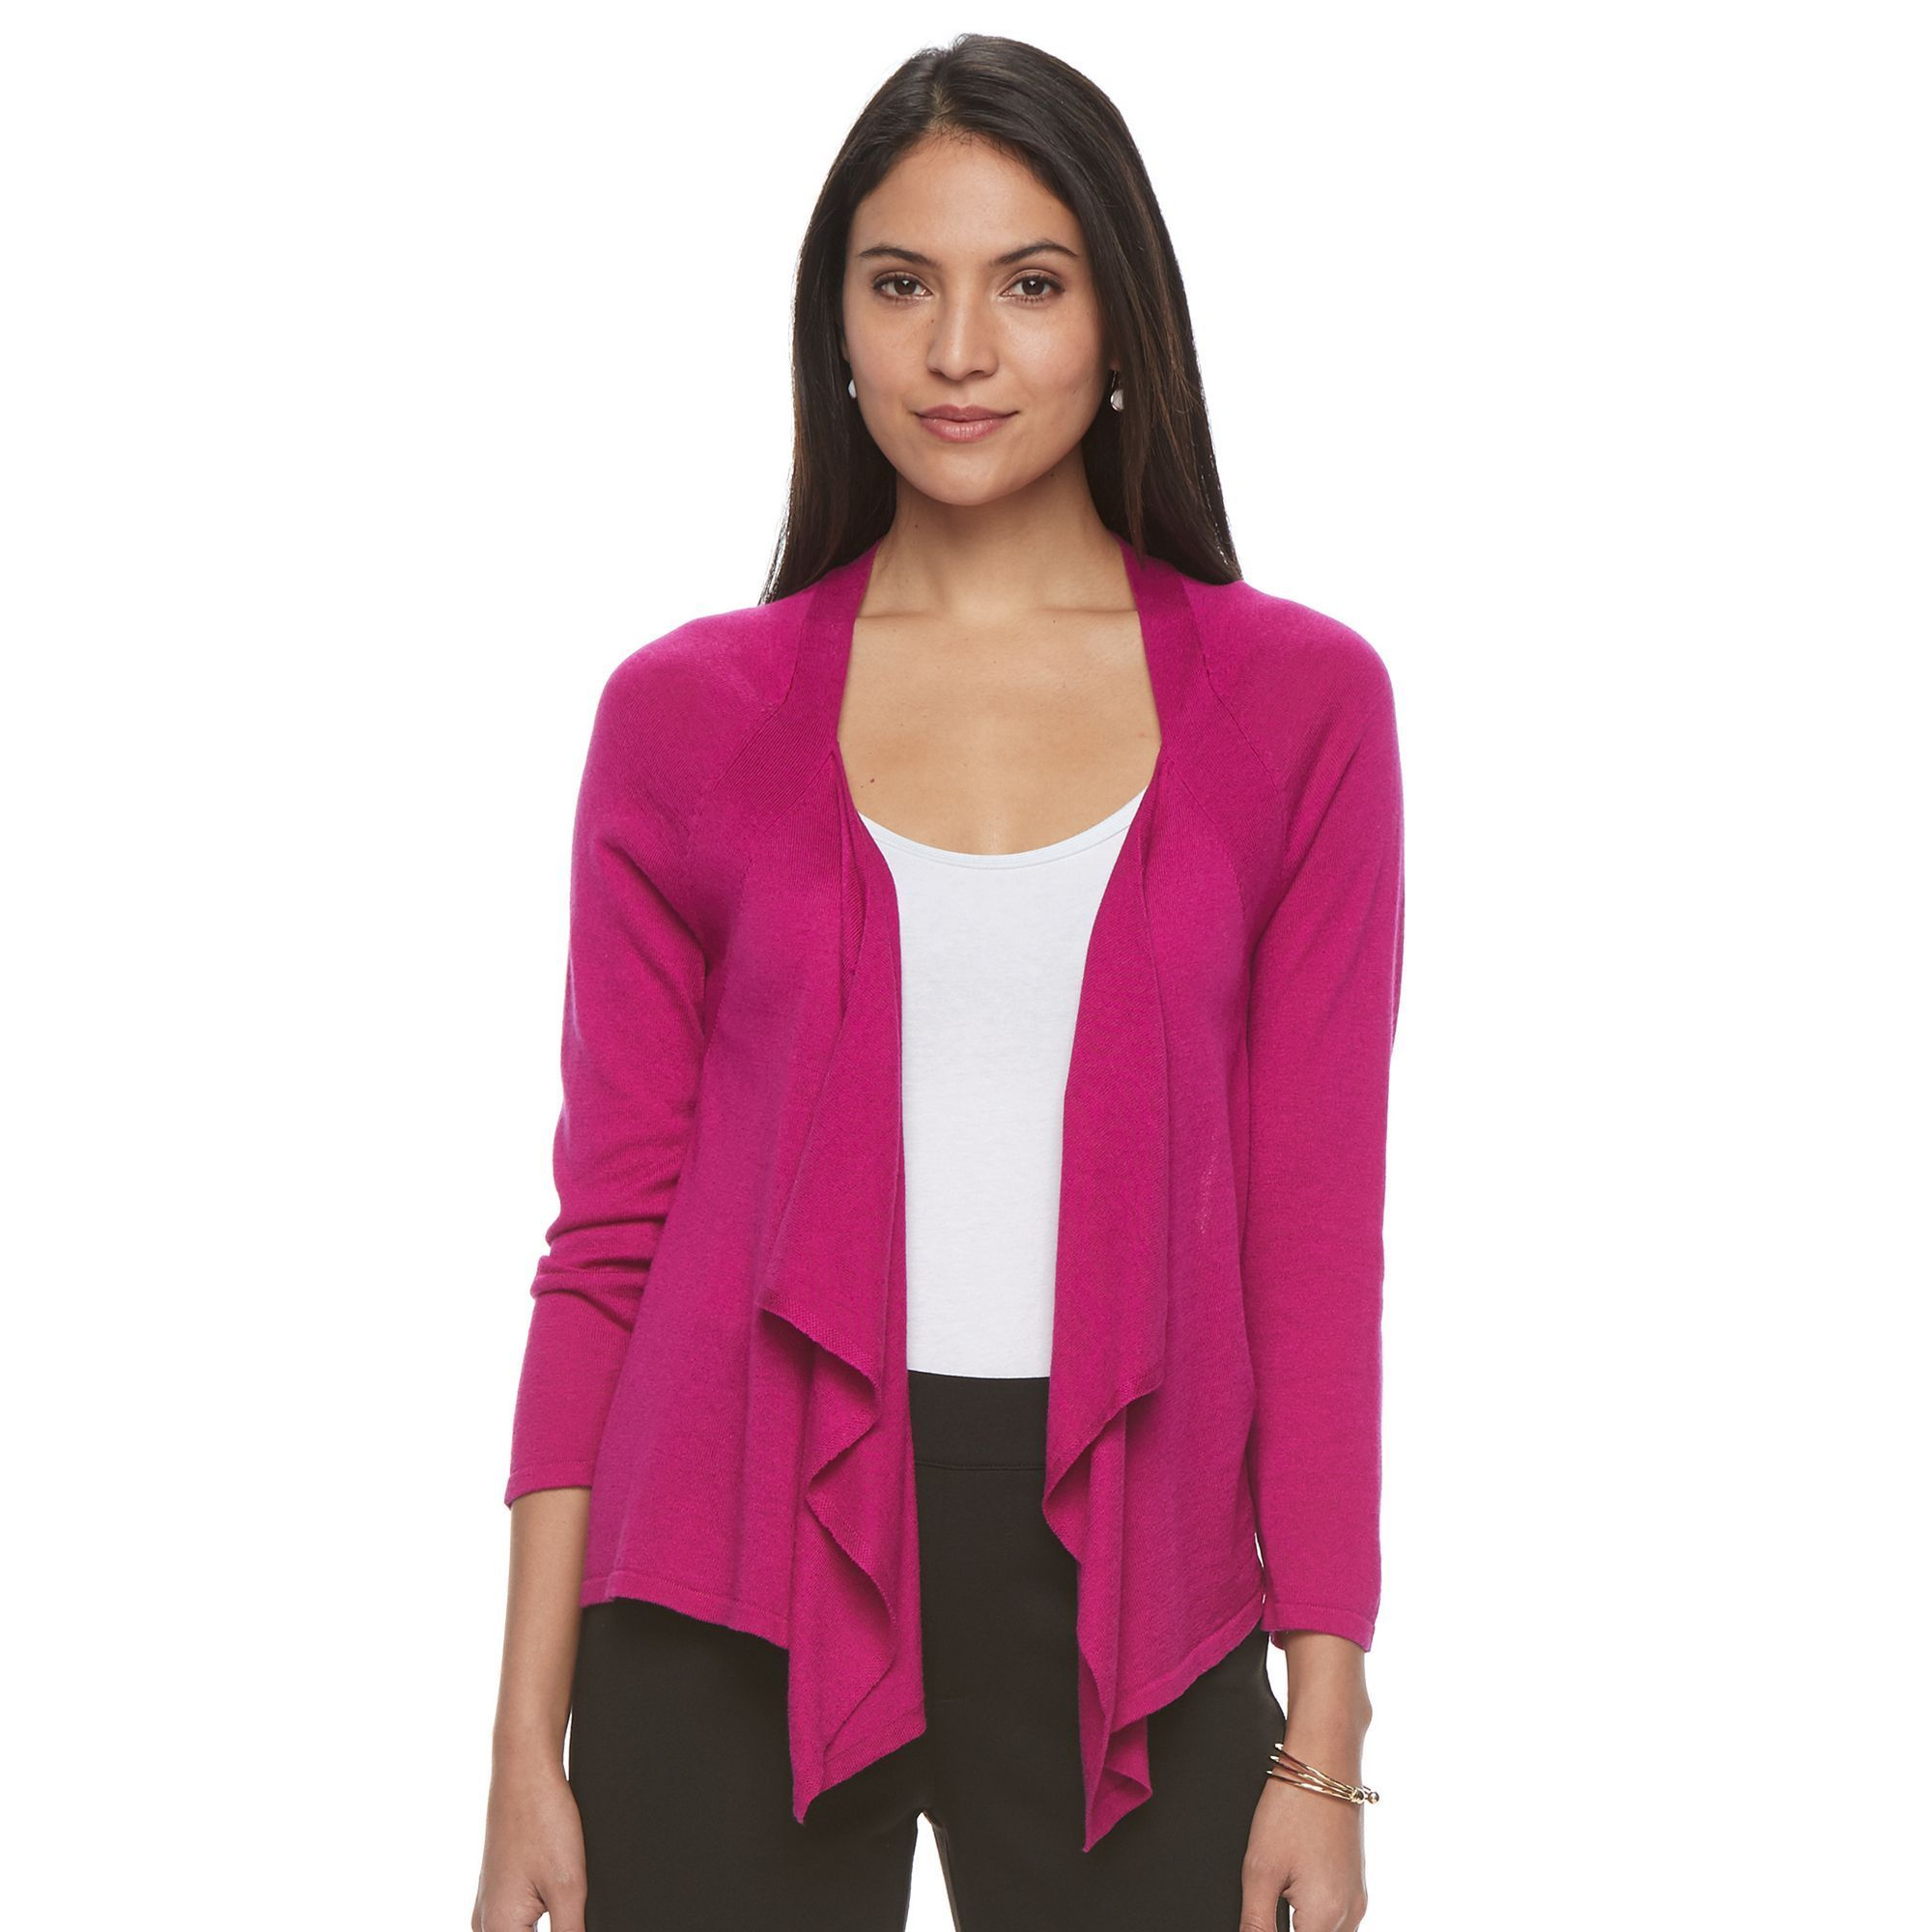 beulah front open of draped image drapes rack shop nordstrom product cardigan